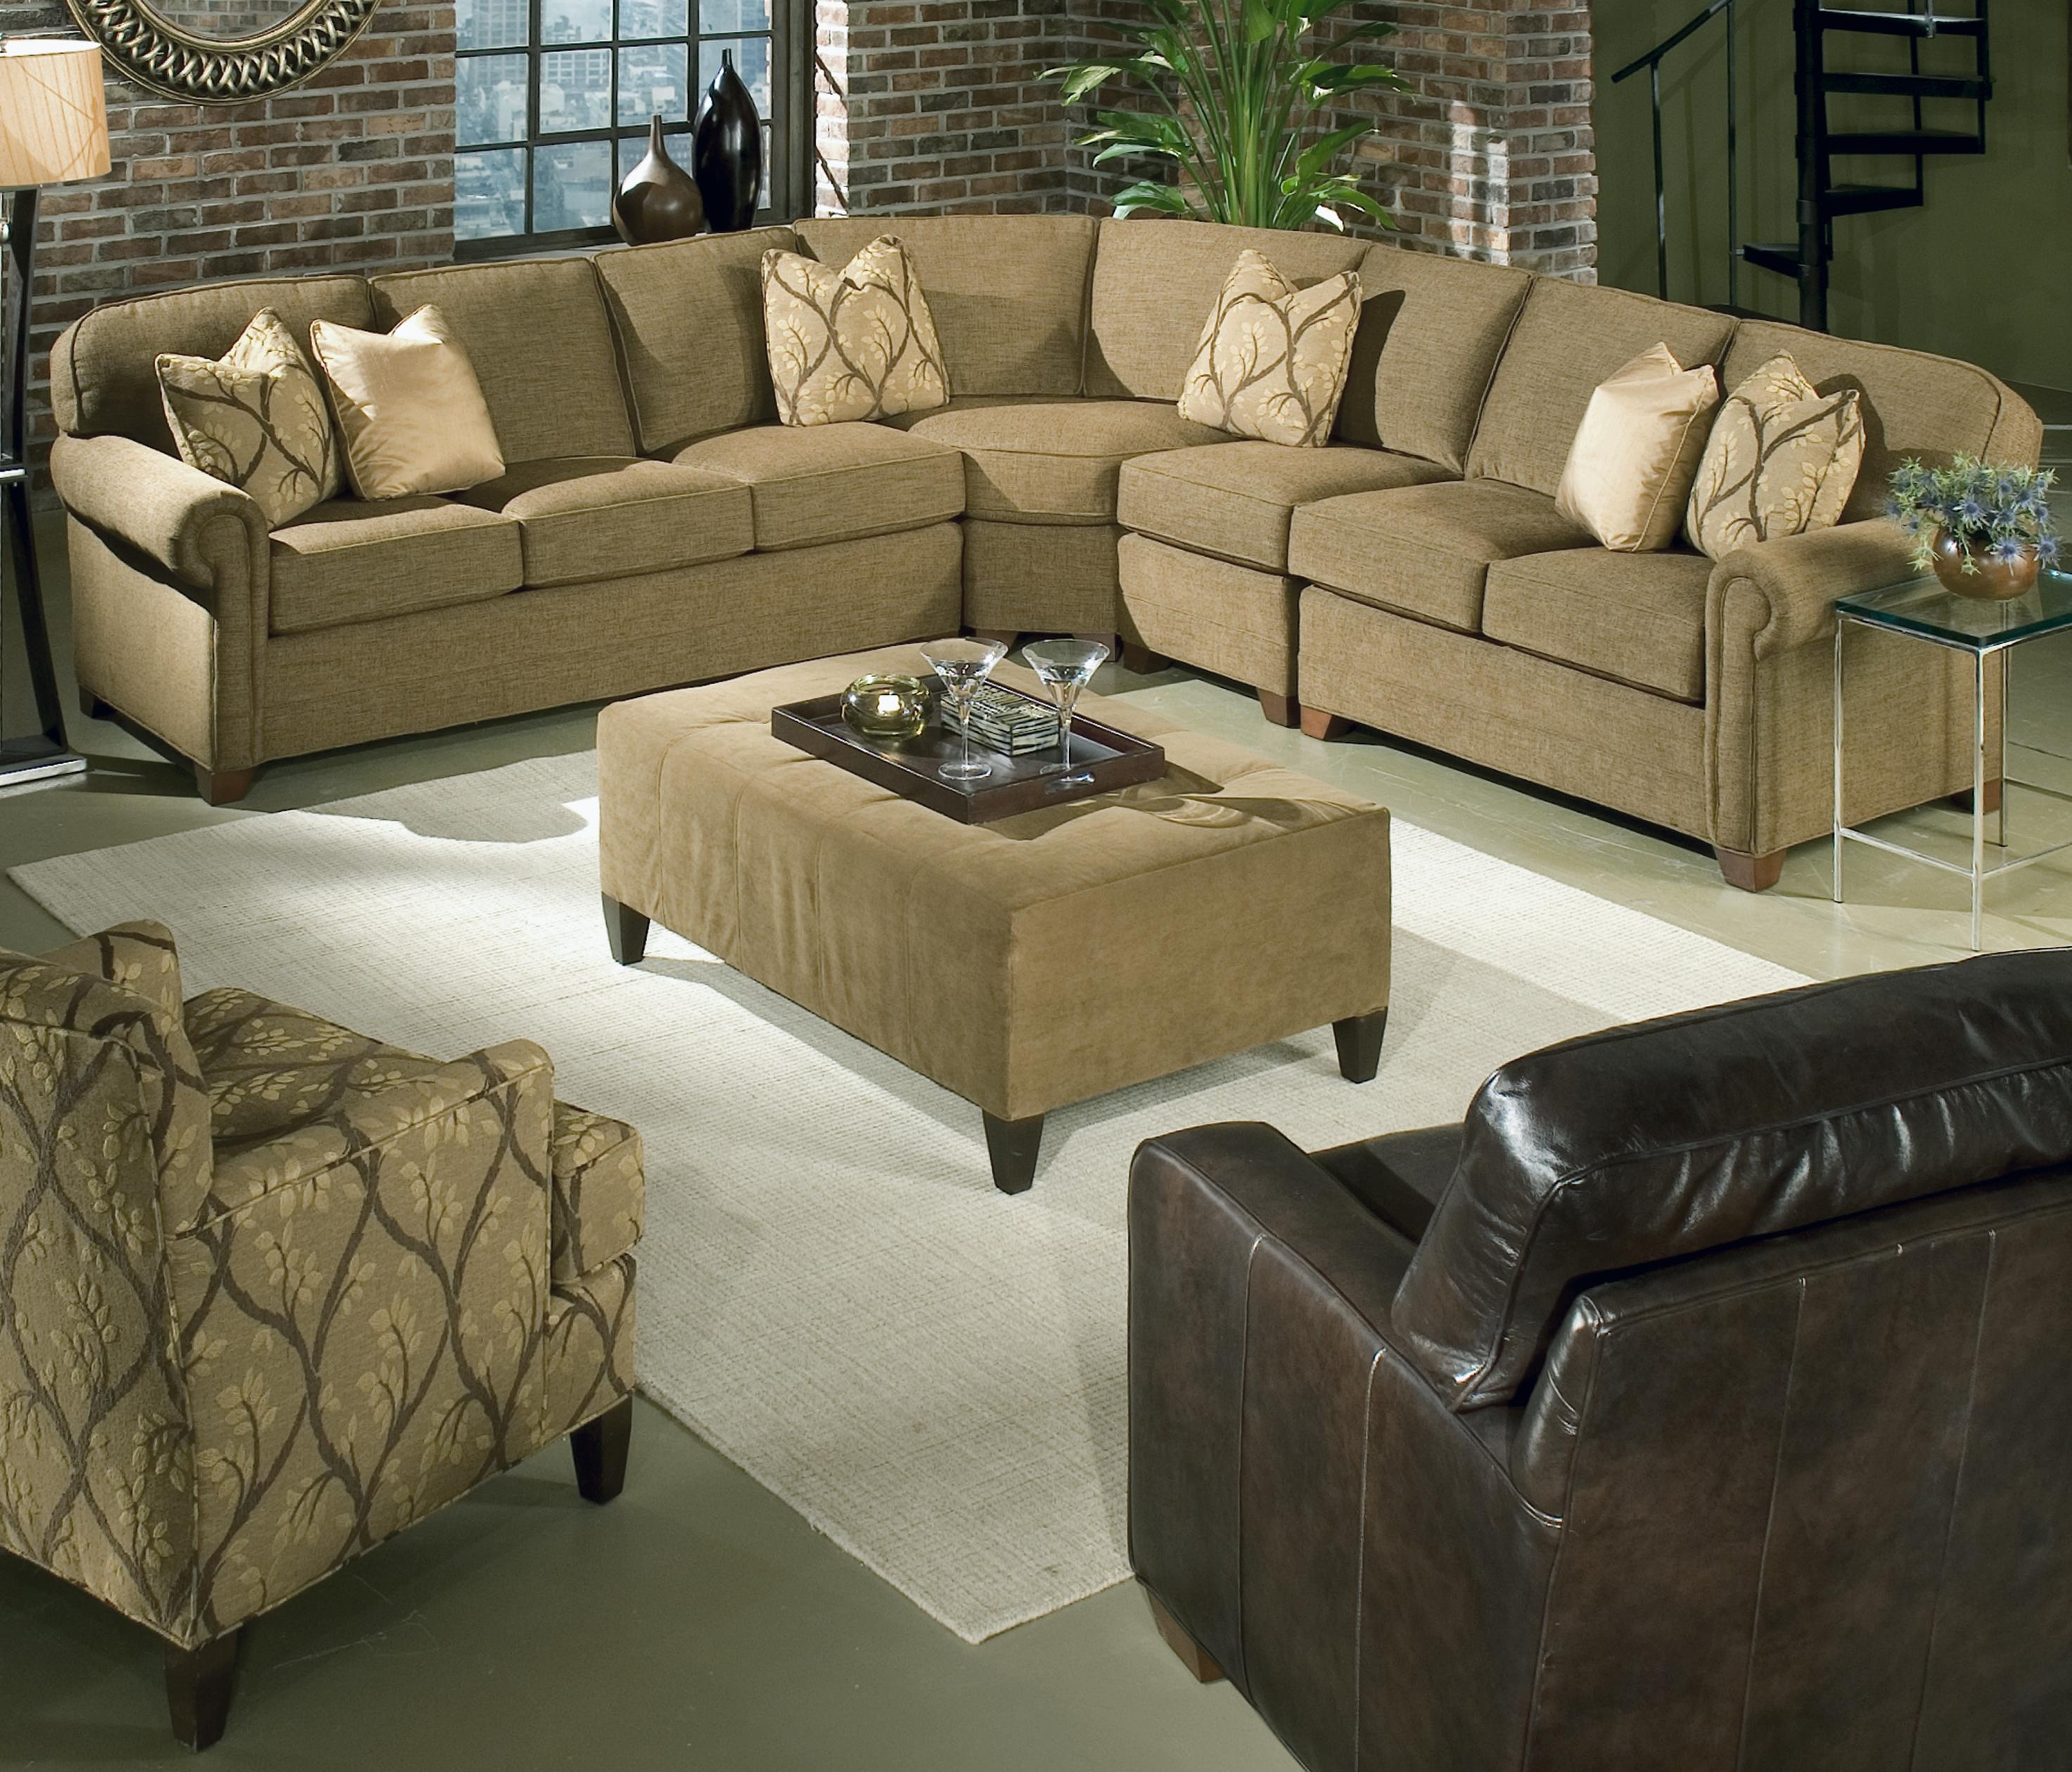 Best Customized Sectional Sofa 83 About Remodel Media Room Pertaining To Customized Sofas (Image 3 of 15)